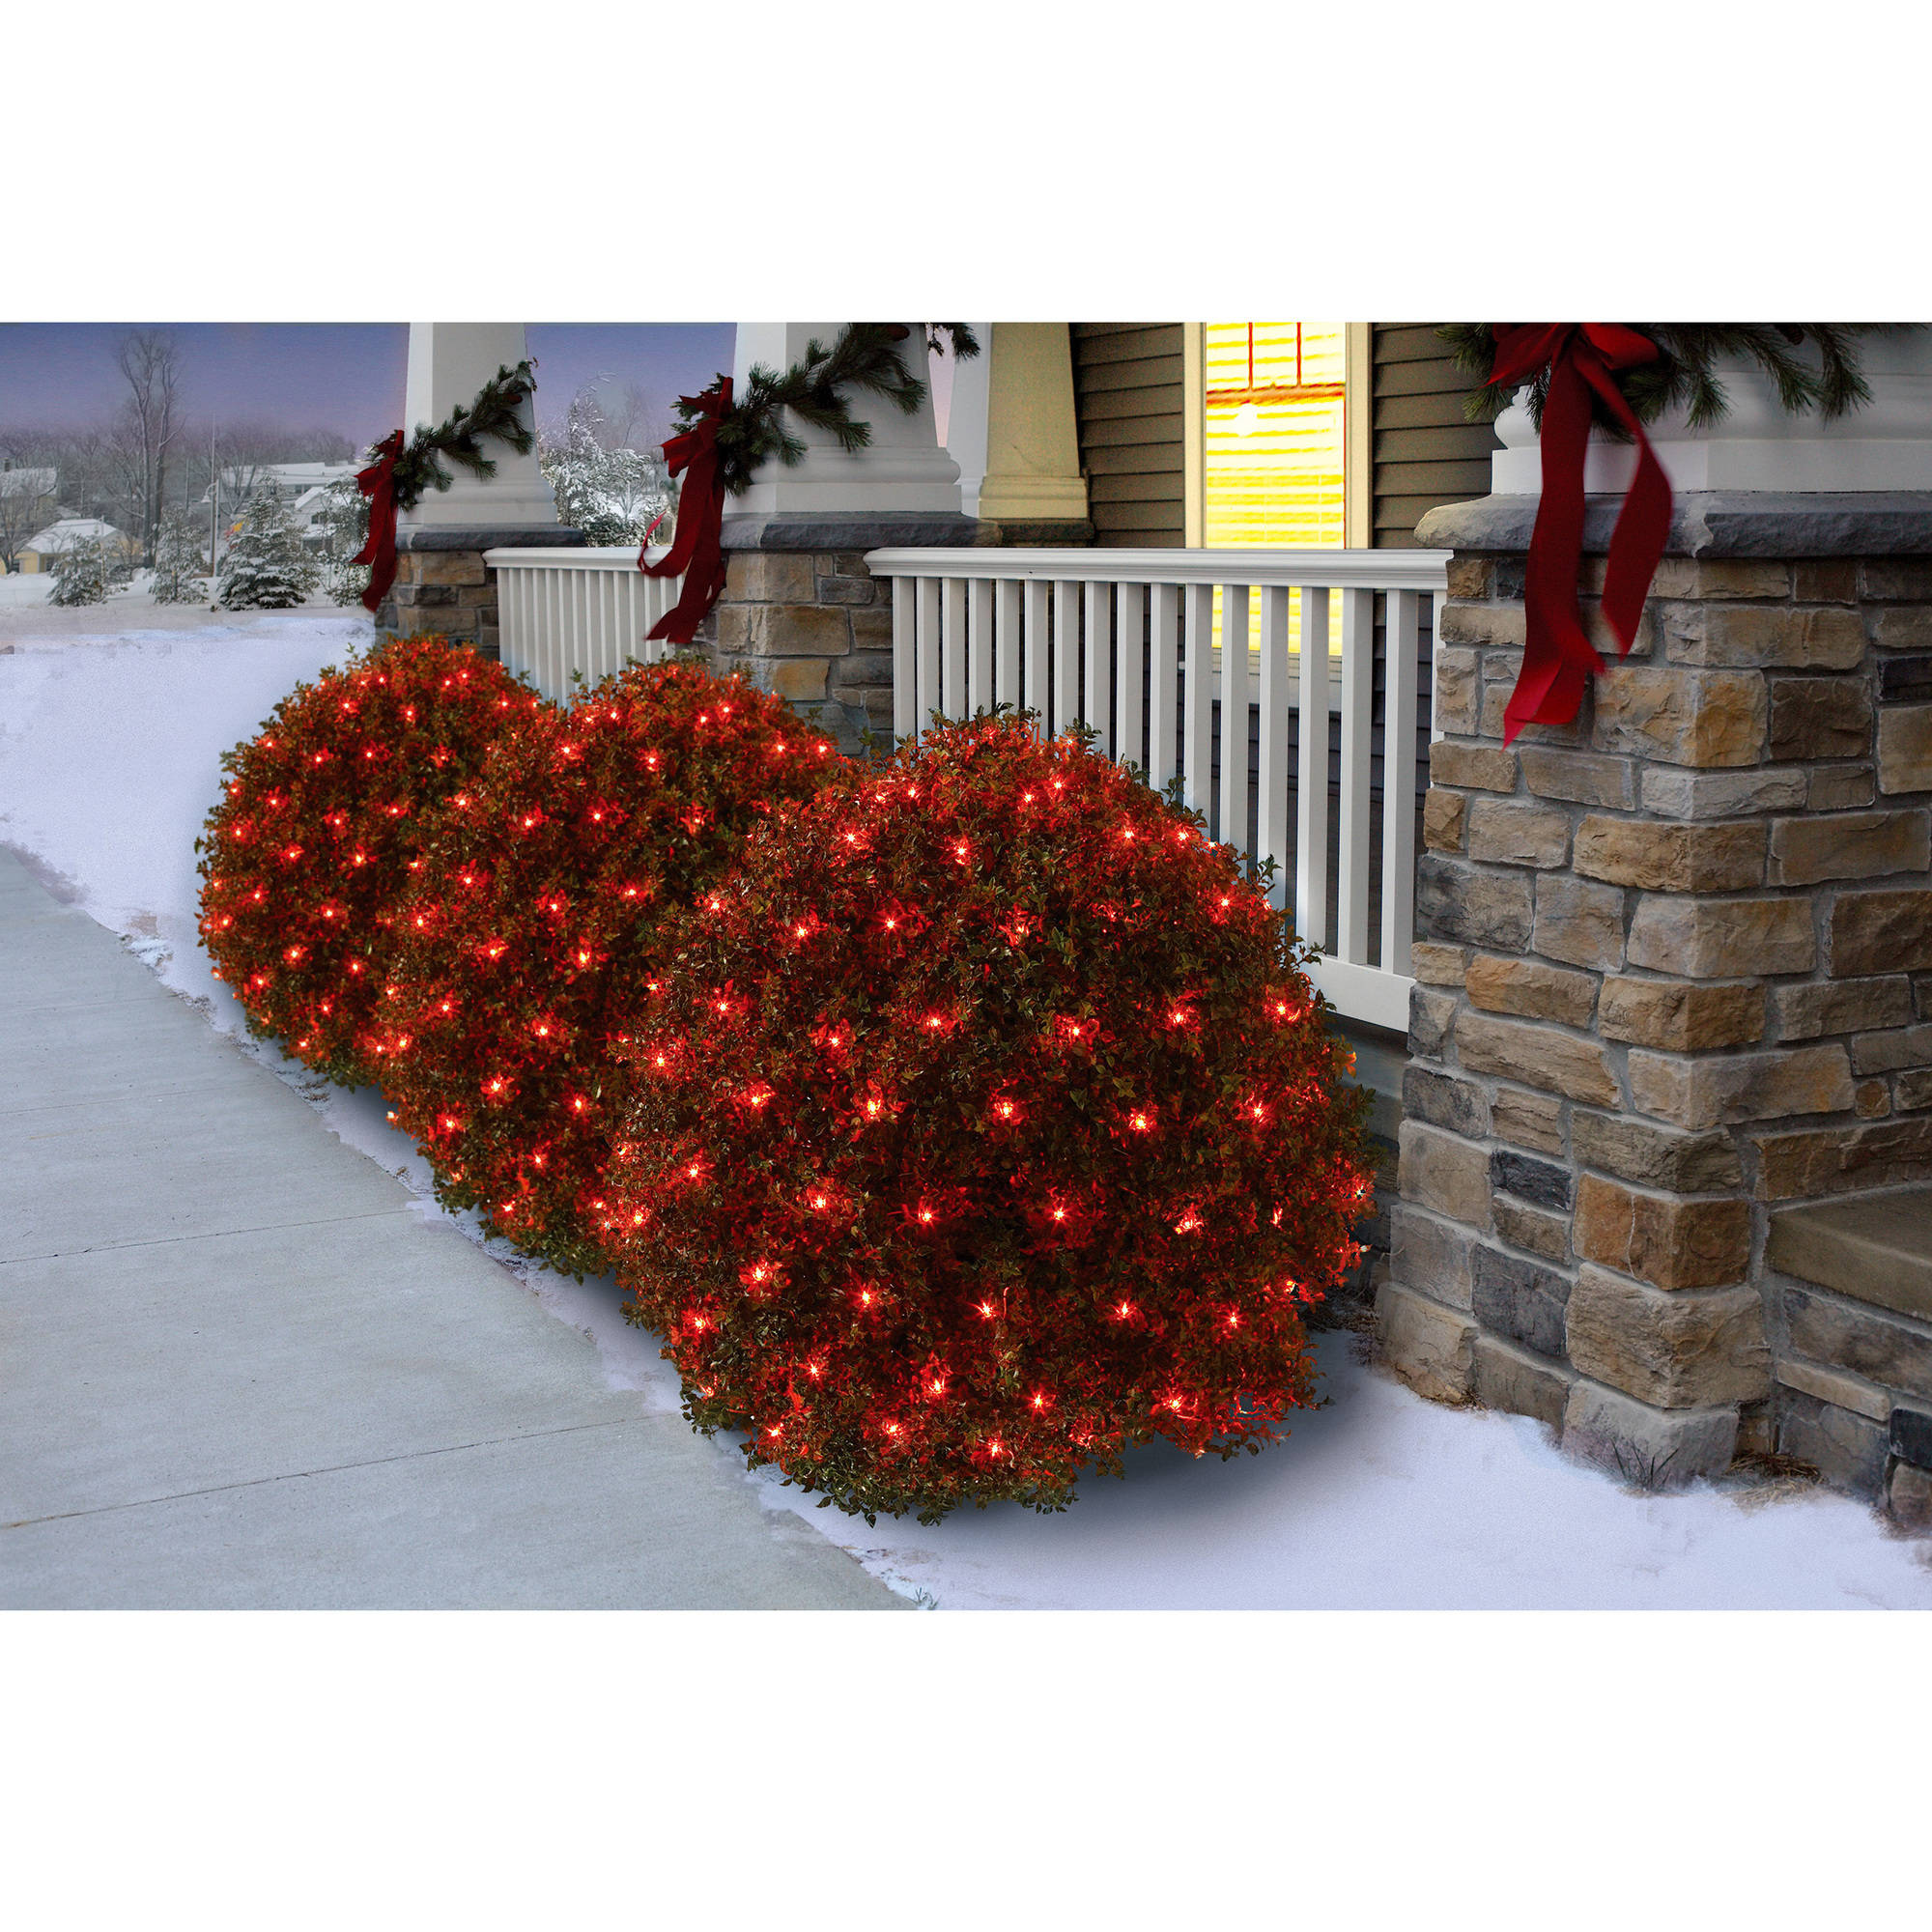 led recall bulb disco unique lights ideas wholesale of light indoor solar net christmas powered outdoor incandescent walmart beautiful best at white